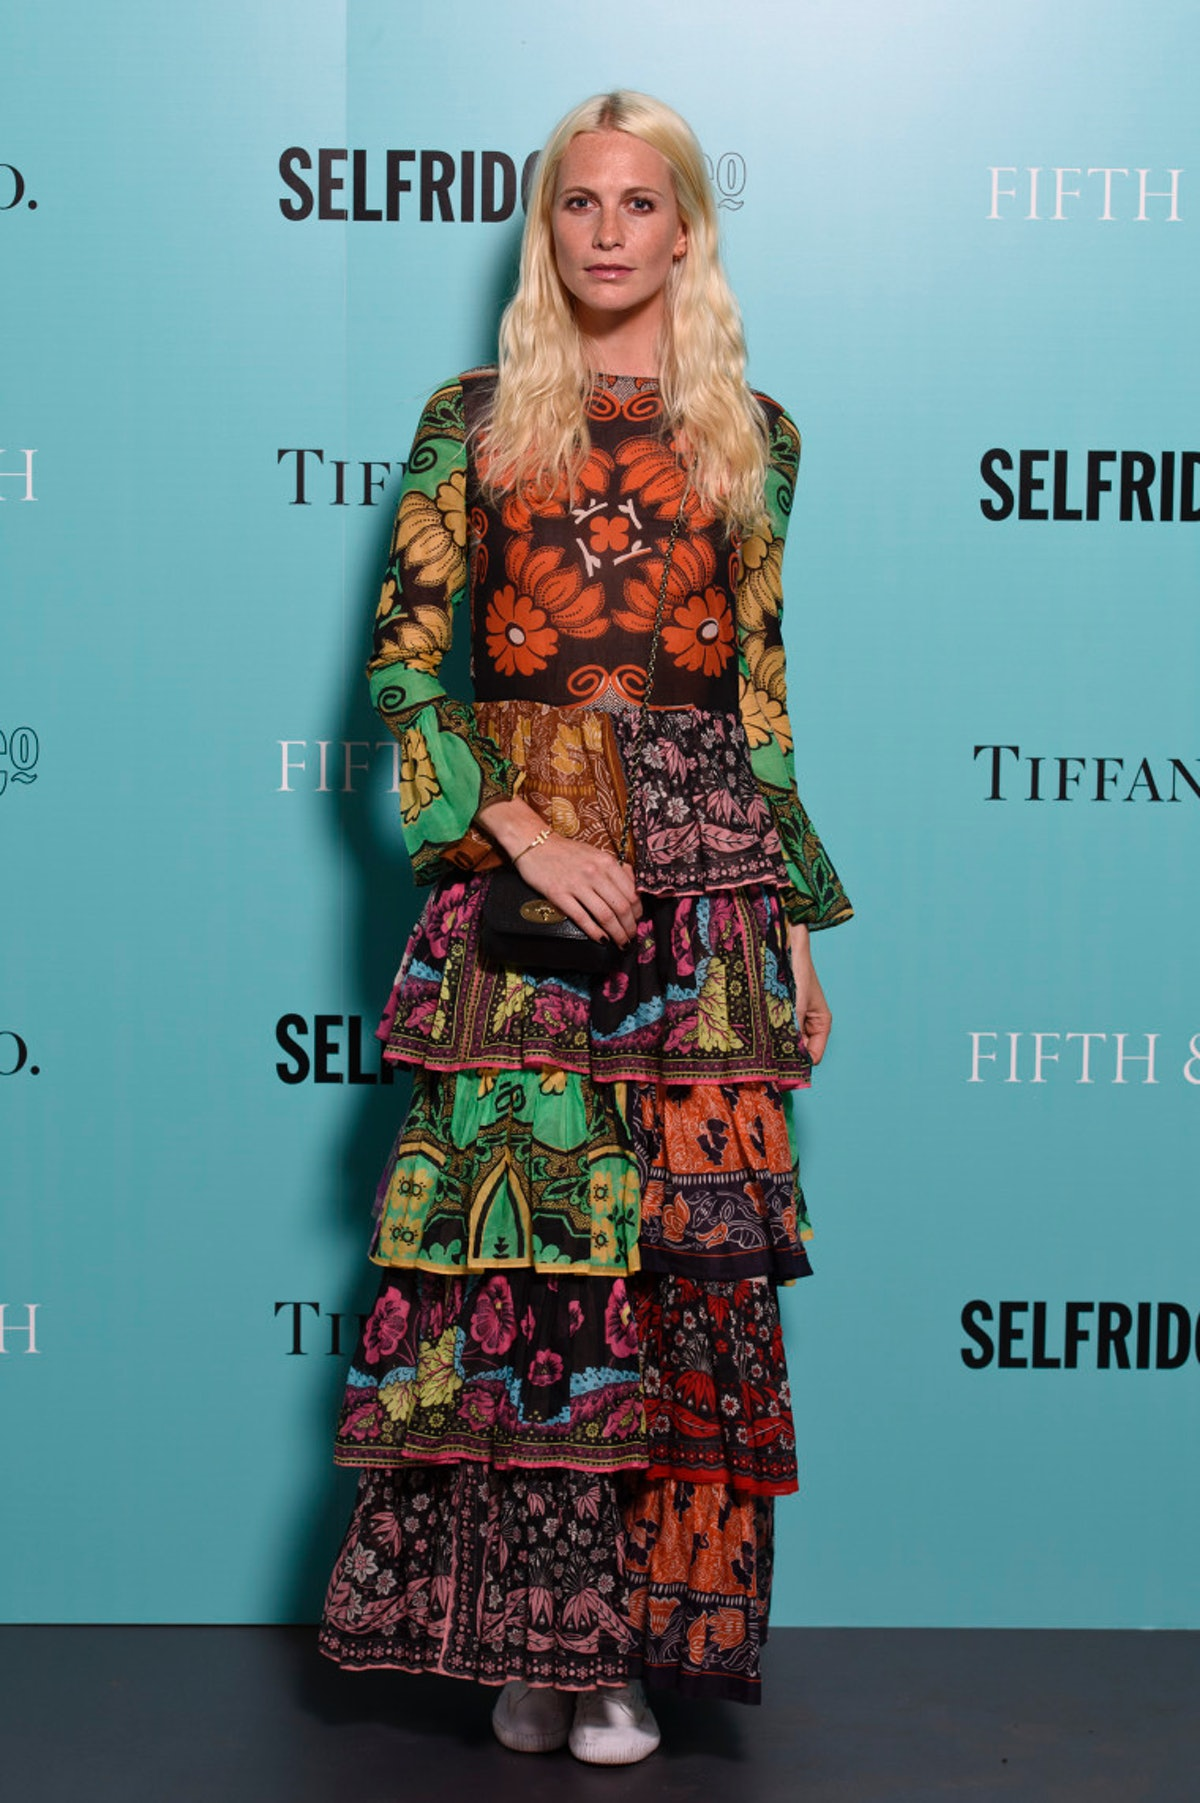 Tiffany & Co. Exhibition 'Fifth And 57th' Opening Night - Arrivals